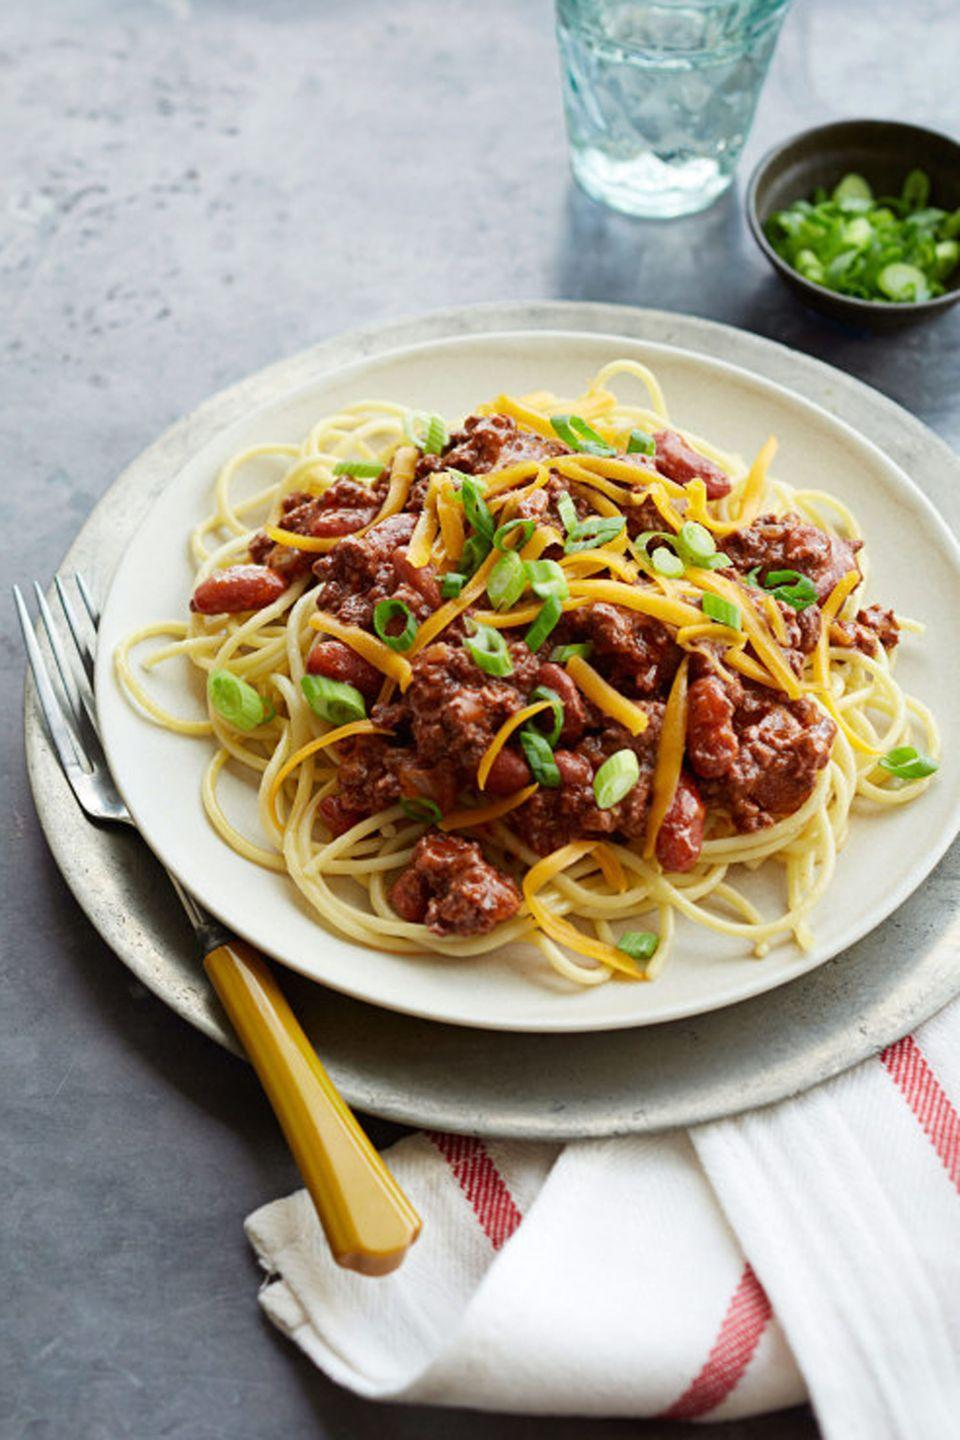 "<p>Give your spread a little Midwestern flair by serving your chili over a bowl of spaghetti, two-way style!</p><p><a href=""https://www.goodhousekeeping.com/food-recipes/a12104/cincinnati-chili-recipe-ghk0114/"" rel=""nofollow noopener"" target=""_blank"" data-ylk=""slk:Get the recipe for Cincinnati Chili »"" class=""link rapid-noclick-resp""><em>Get the recipe for Cincinnati Chili »</em></a></p>"